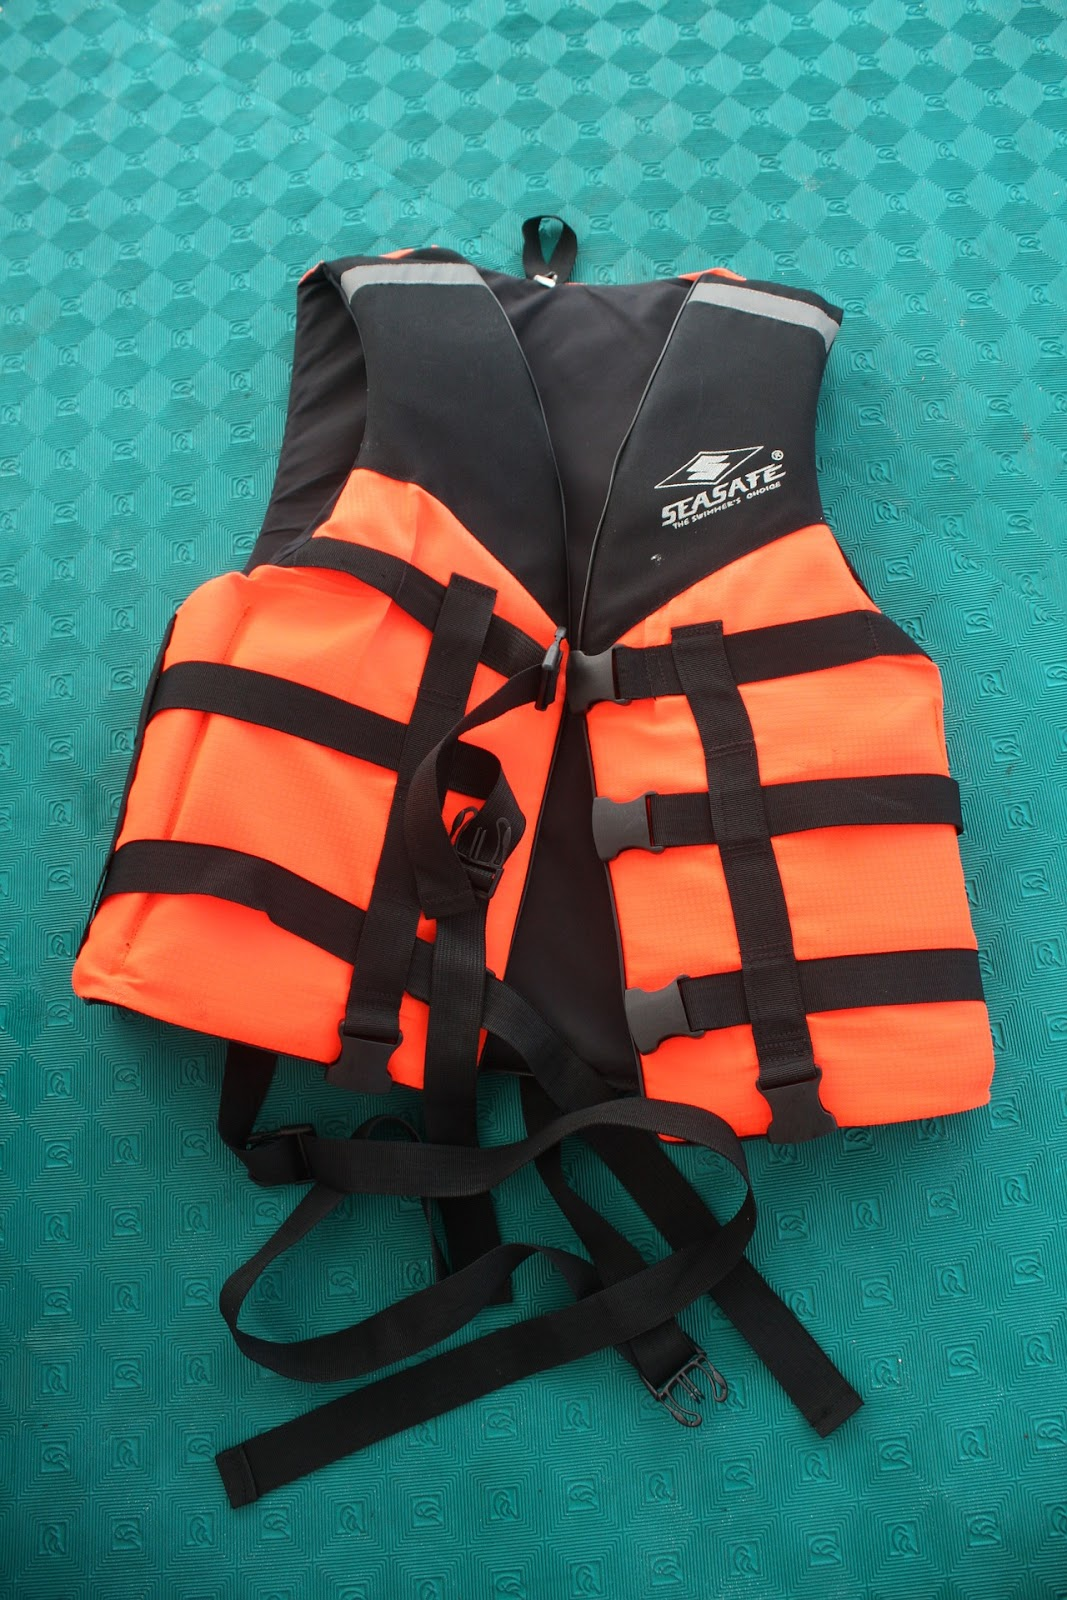 A photo of an orange and black life vest is shown.